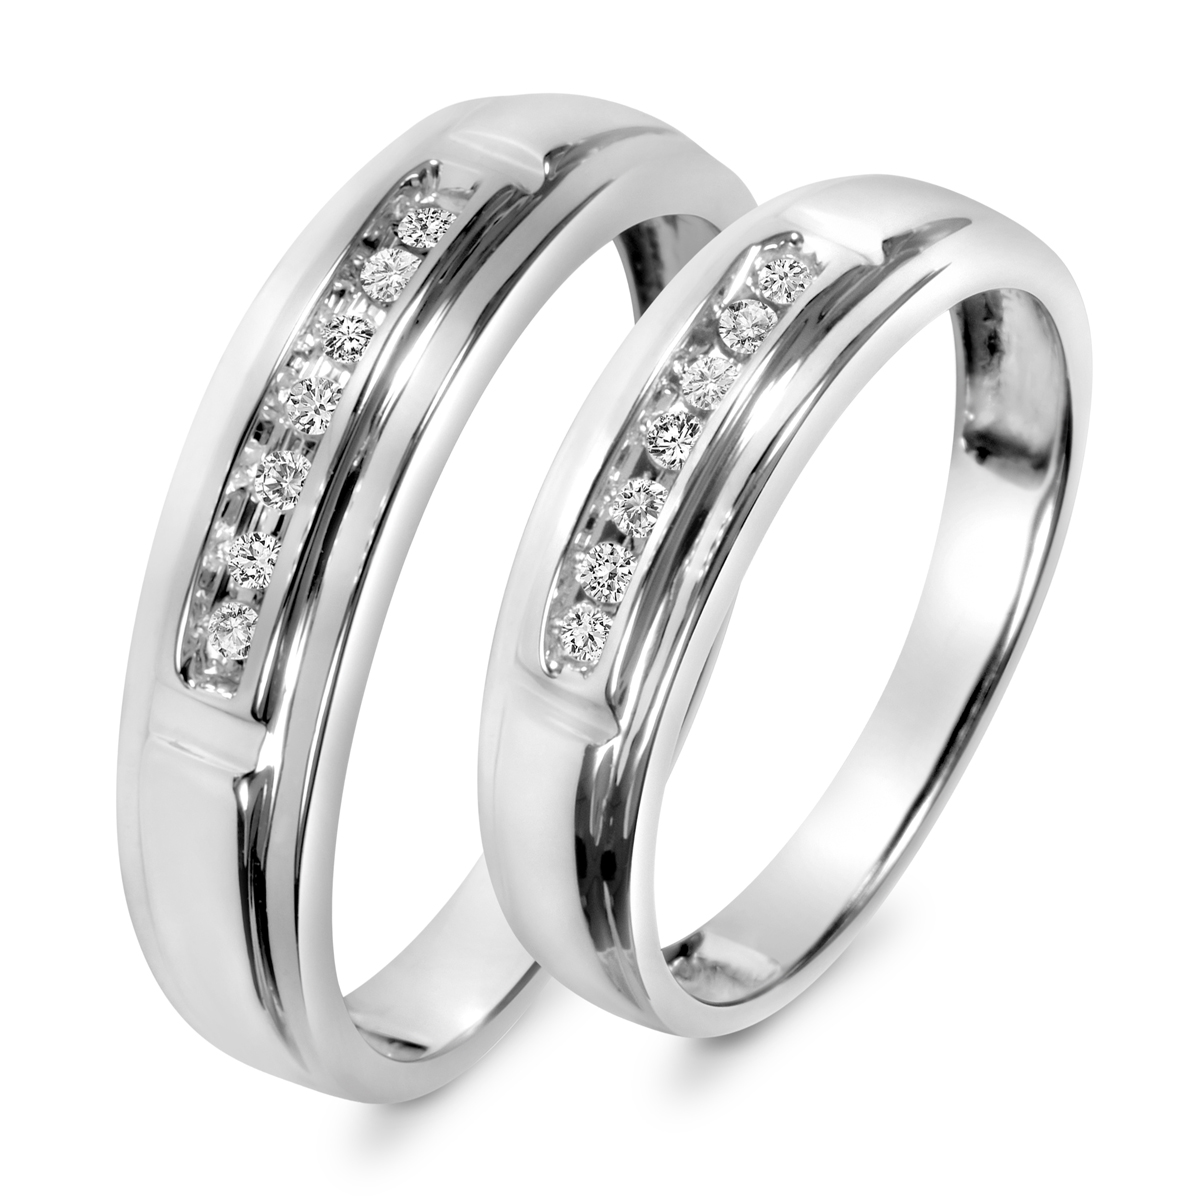 wedding tapered ring sets custom pavee with solitaire set vancouver bridal matching engagement rings diamond